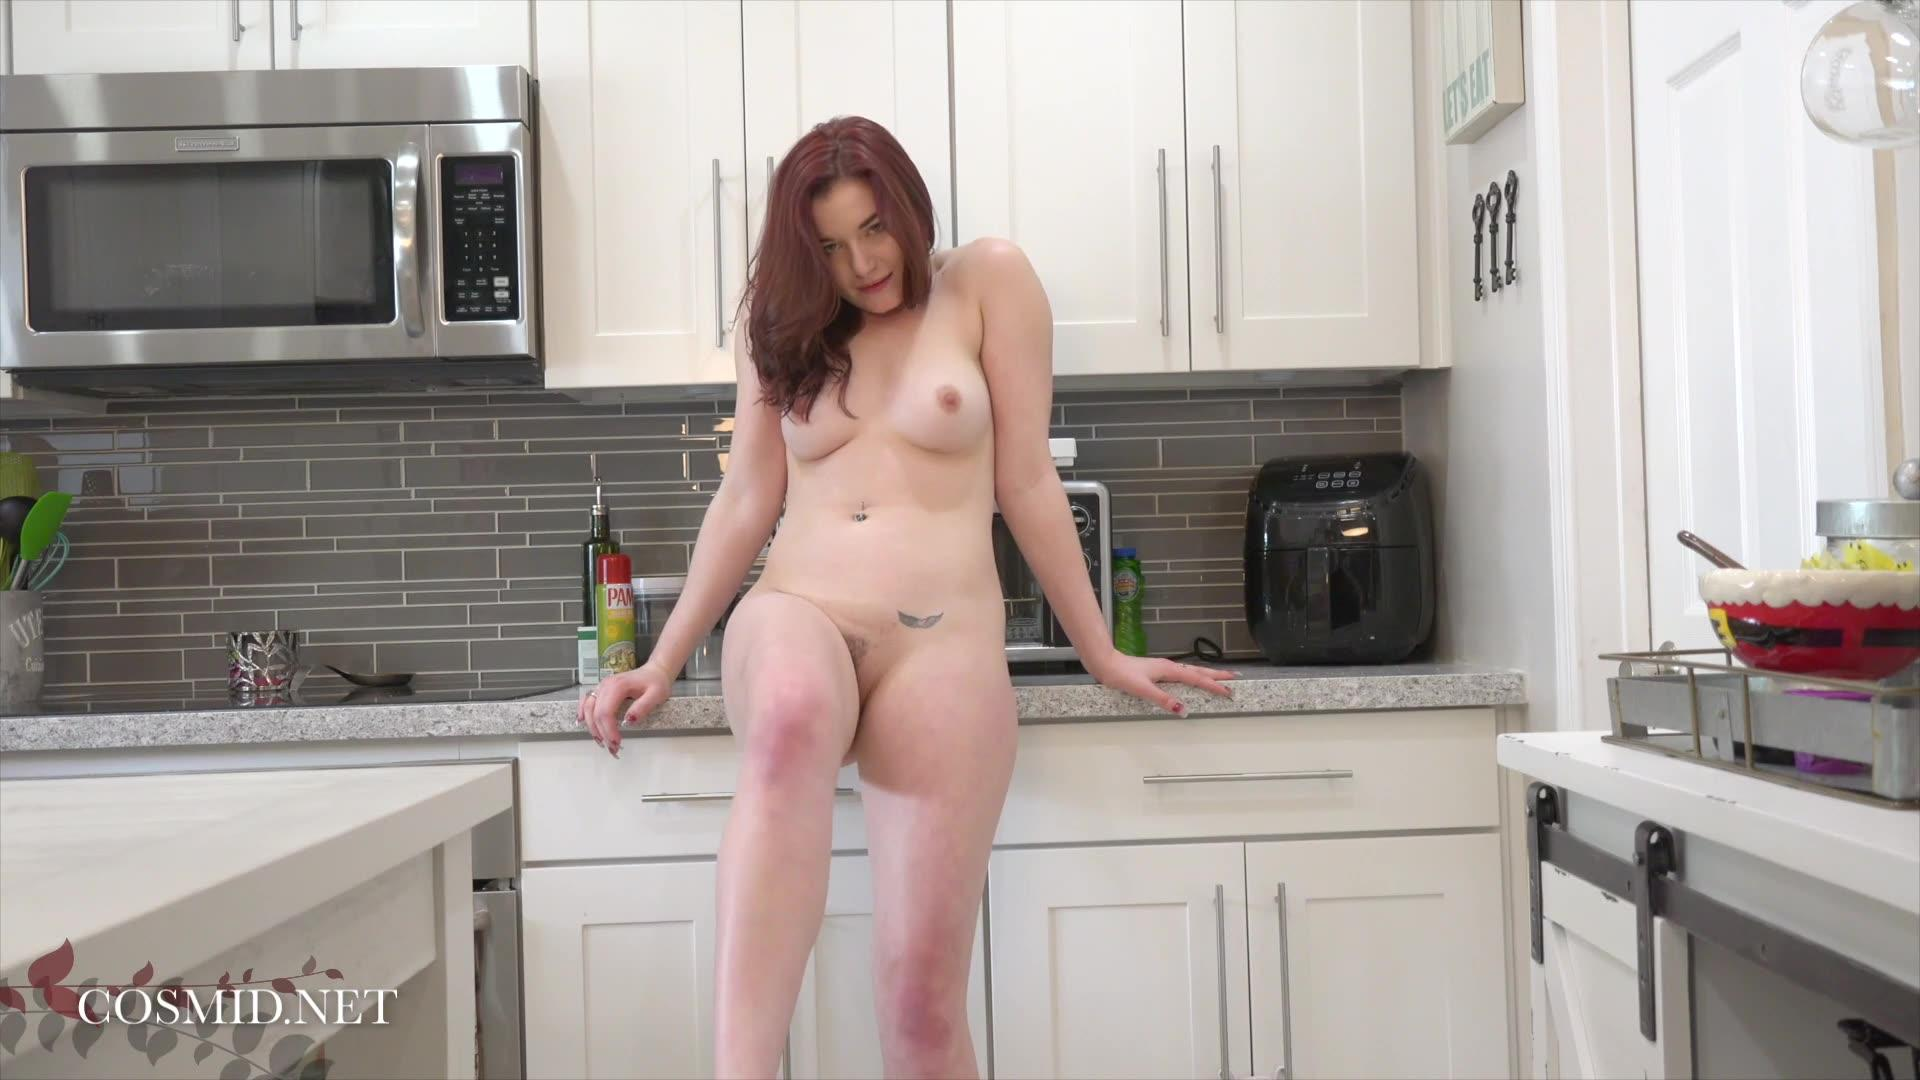 Amber Smith Sex Videos amber smith in the kitchen (cosmid/2019/1080p) - free porn